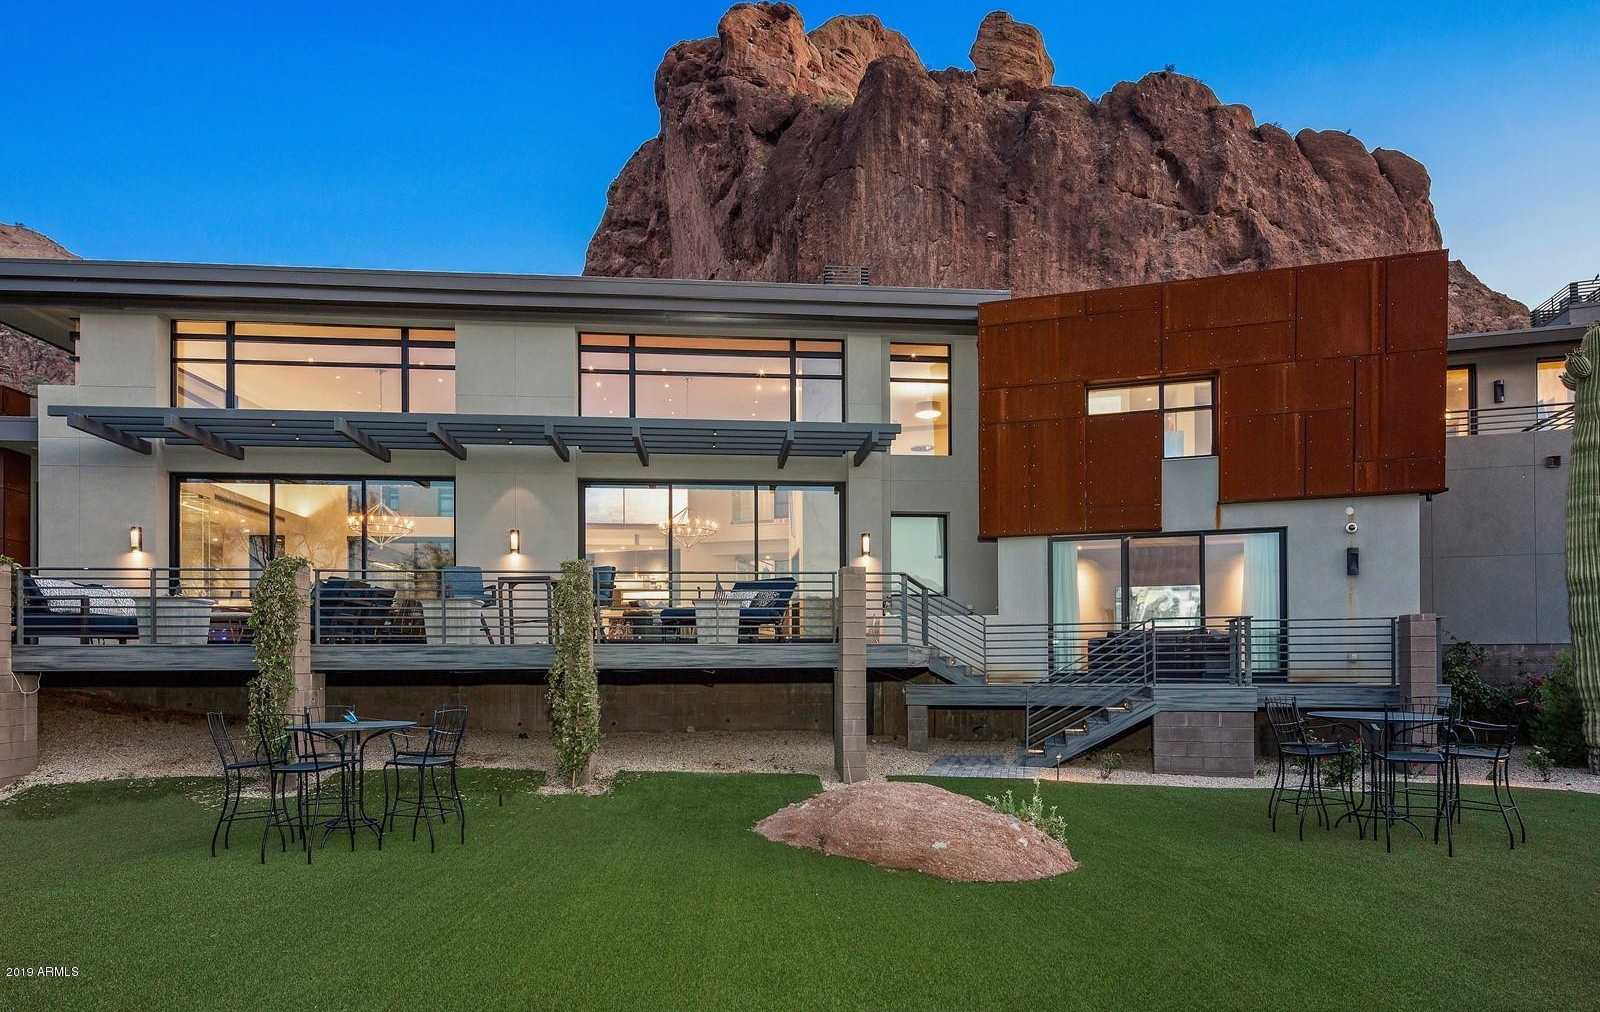 $9,500,000 - 5Br/6Ba - Home for Sale in Stone Canyon, Paradise Valley